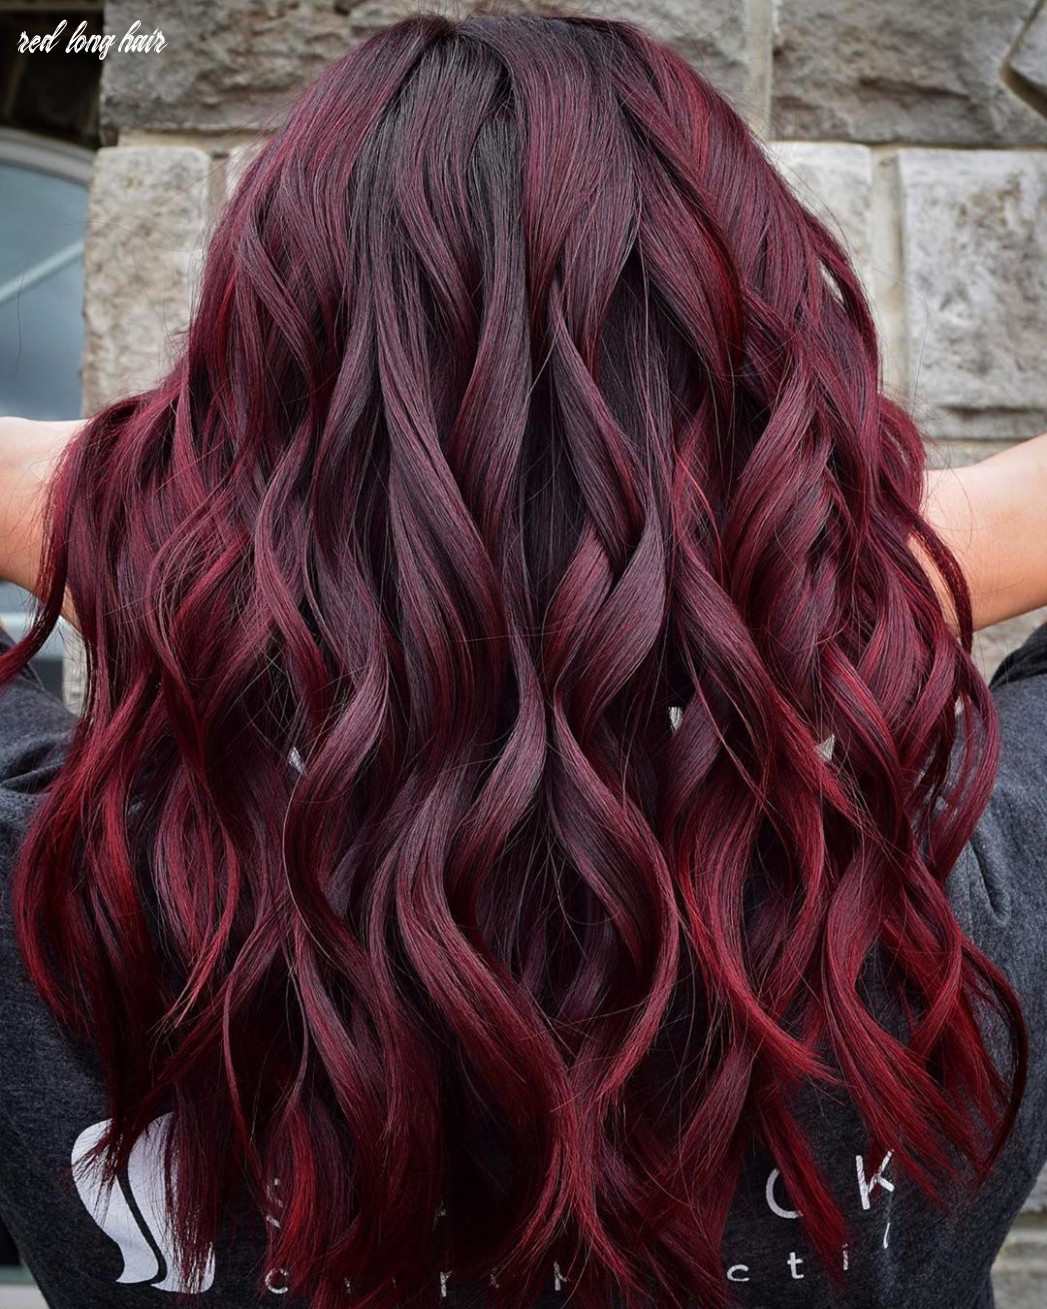 10 new red hair ideas & red color trends for 10 hair adviser red long hair